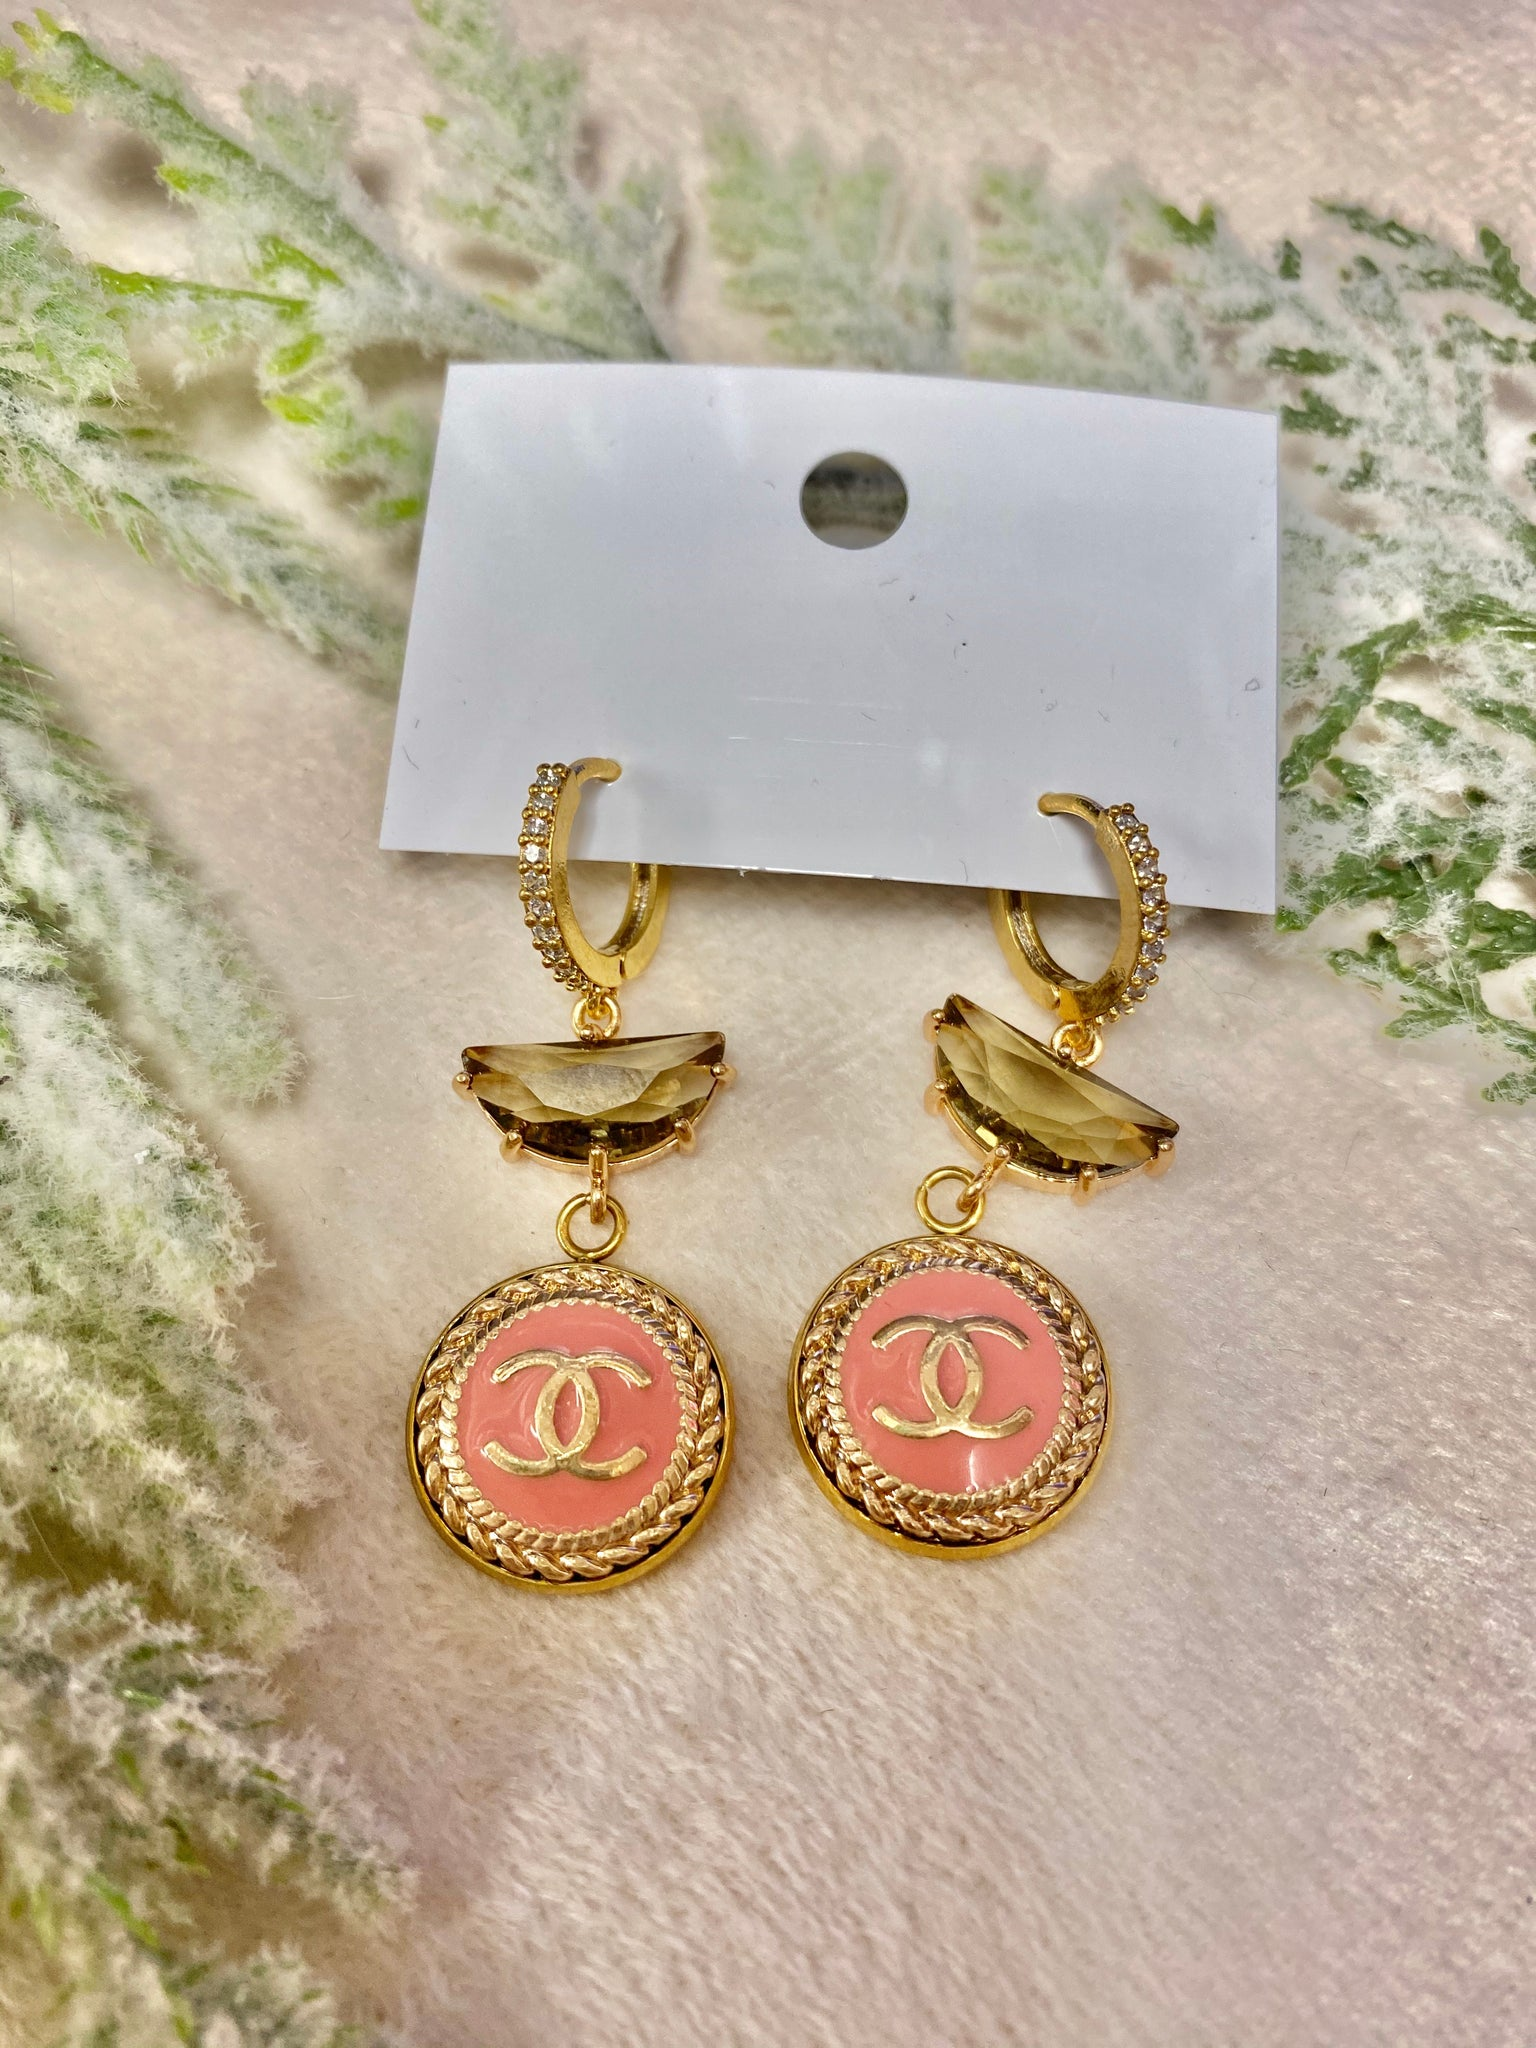 Vintage Chanel Pink & Diamond Hook Earrings with Champagne Stones